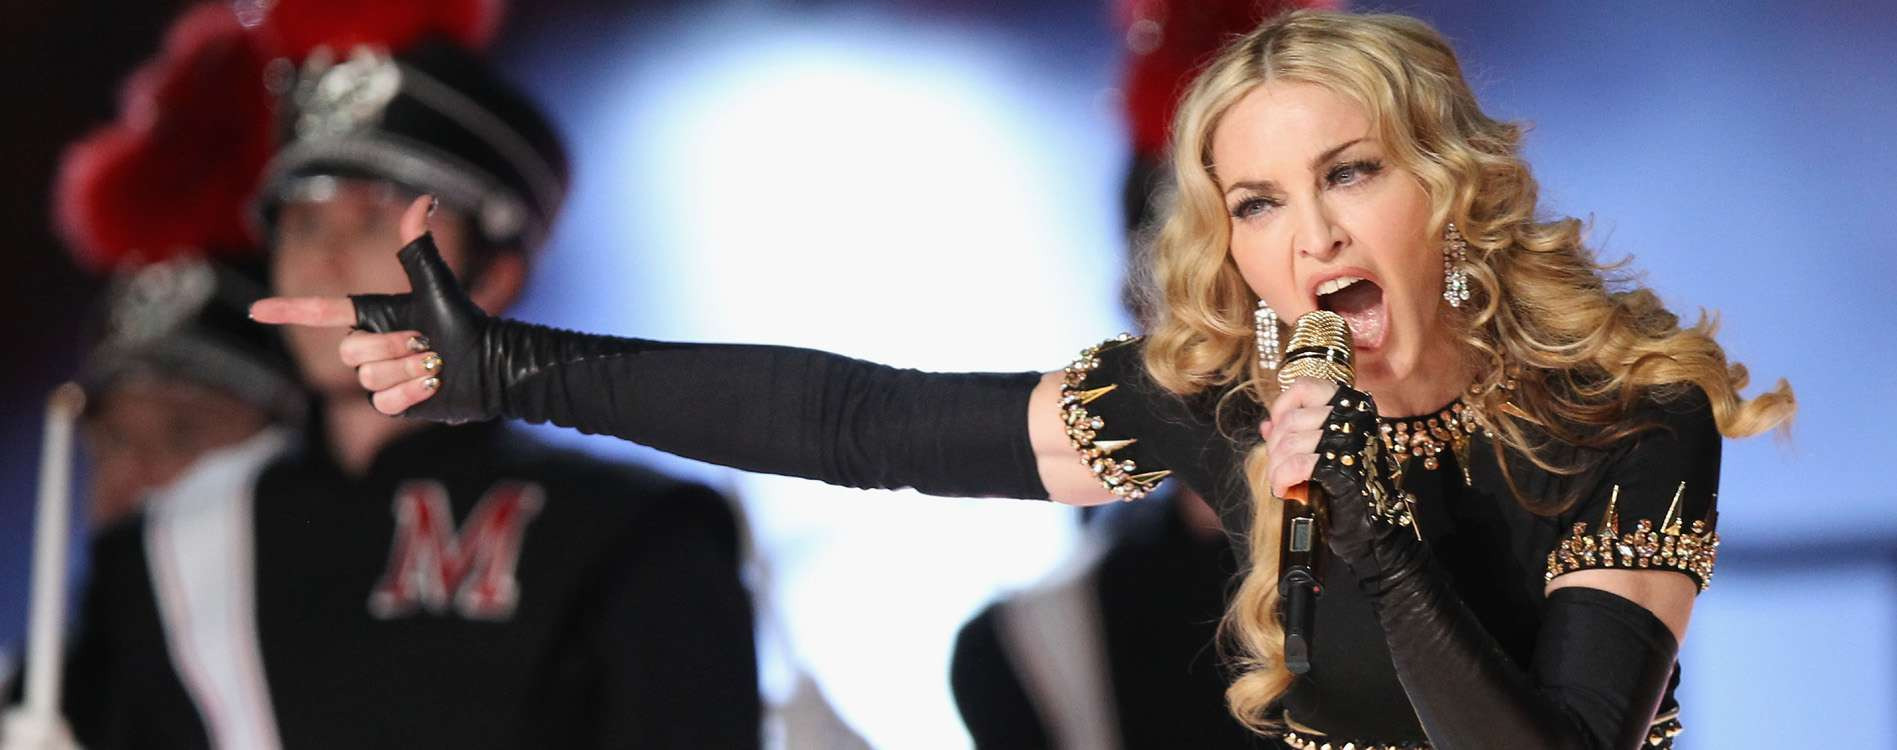 Grammy 2015 madonna Foto: Getty Images